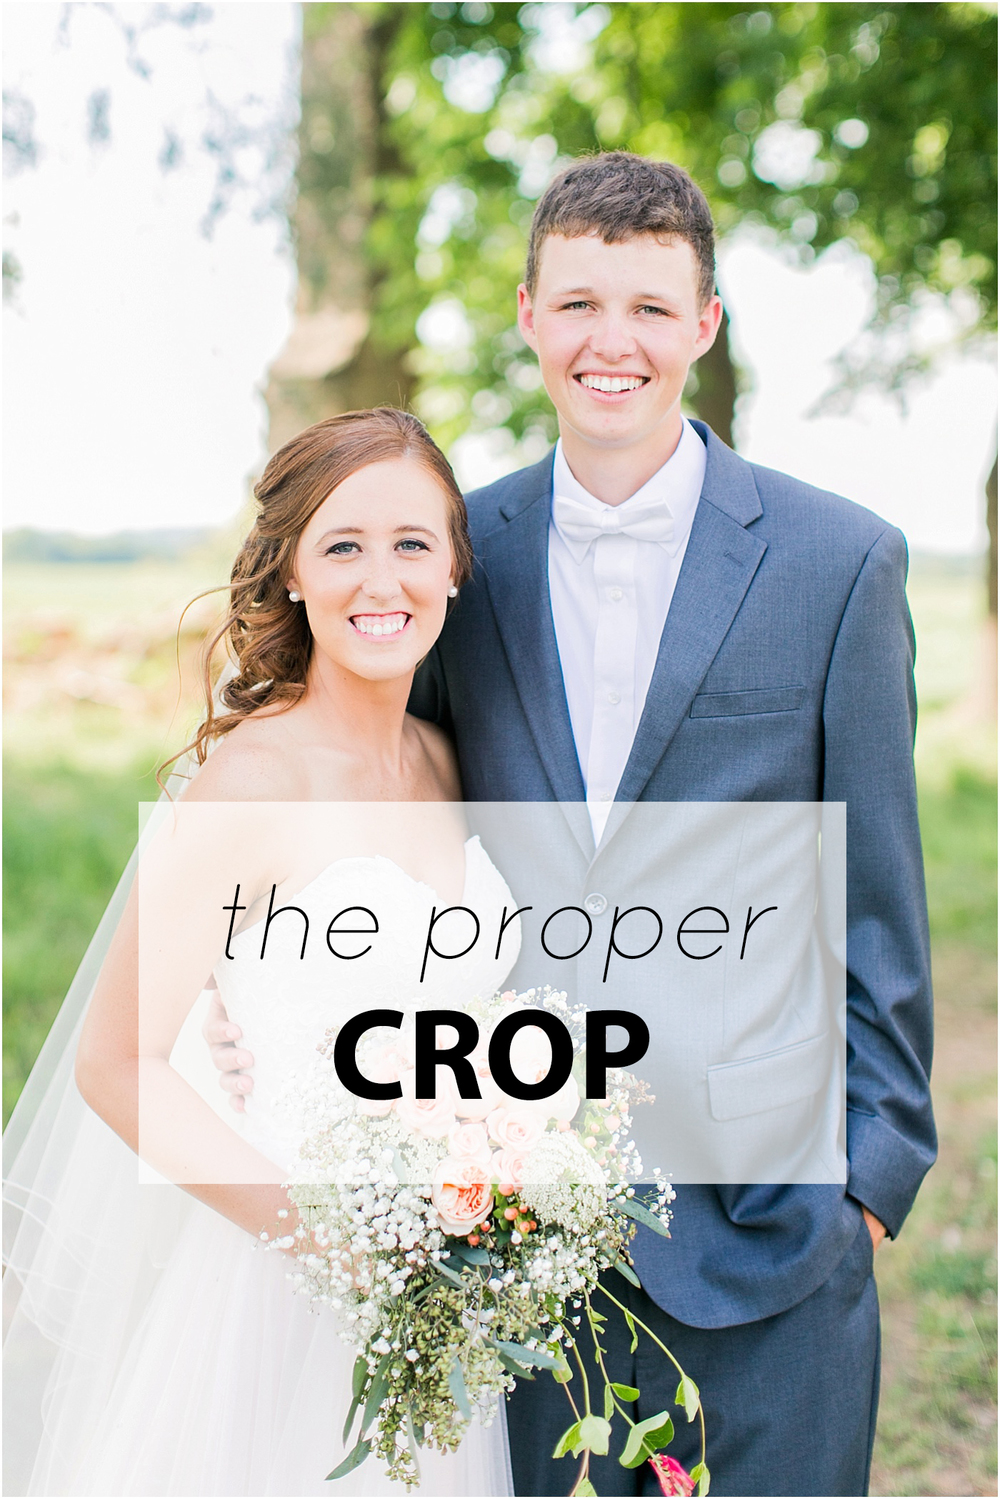 The Propper Crop - The Jordan Brittley Blog (www.jordanbrittleyblog.com)